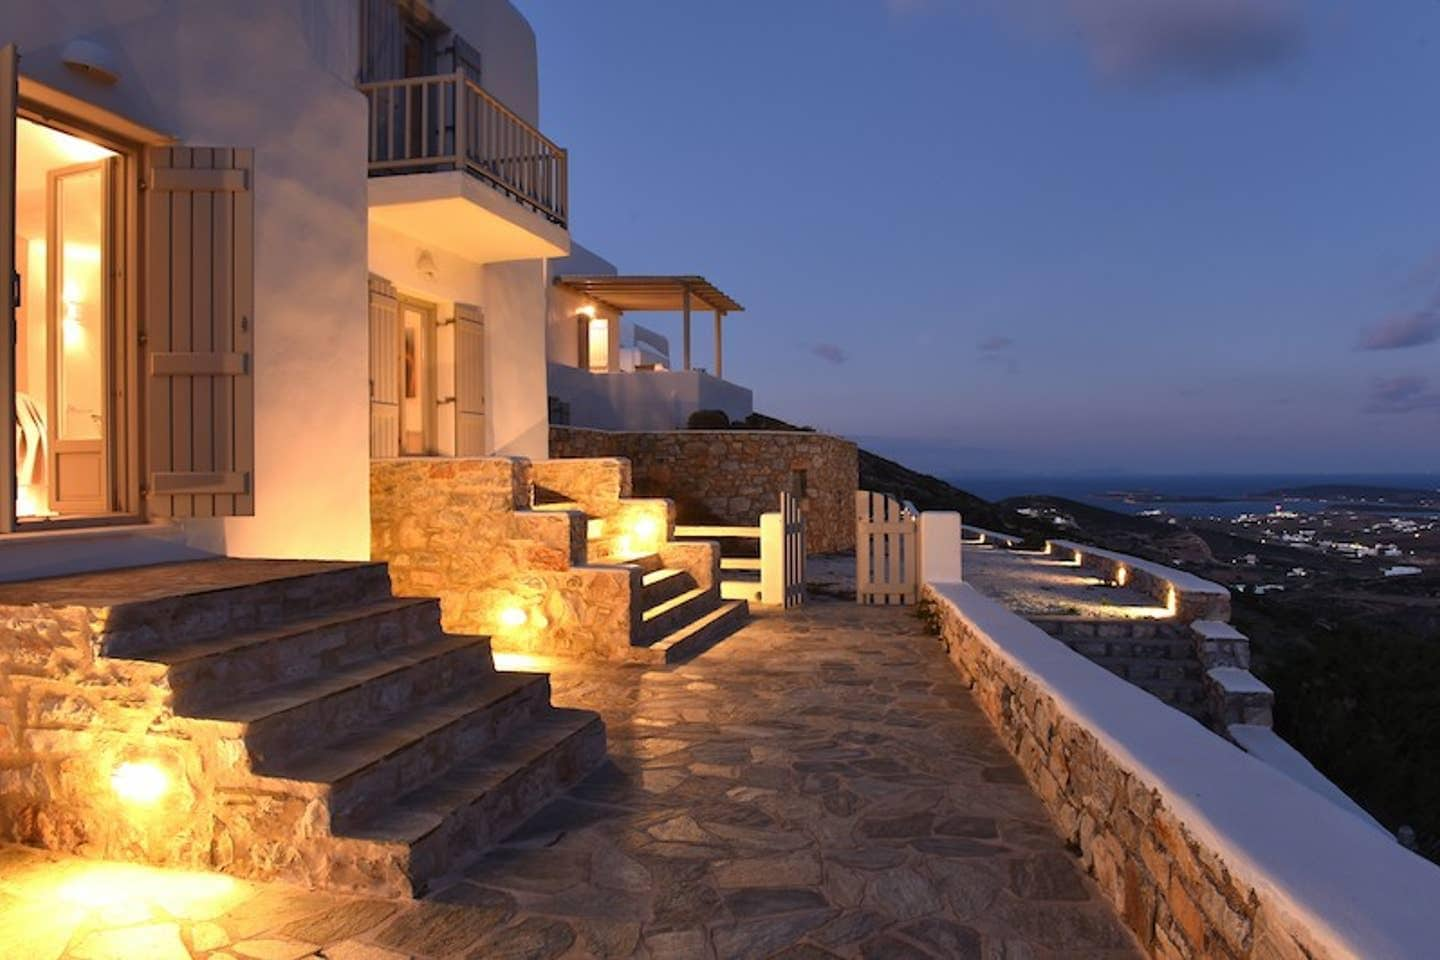 Property Image 2 - Trio Deluxe Villa with Infinty Pool located in Nousa Greece